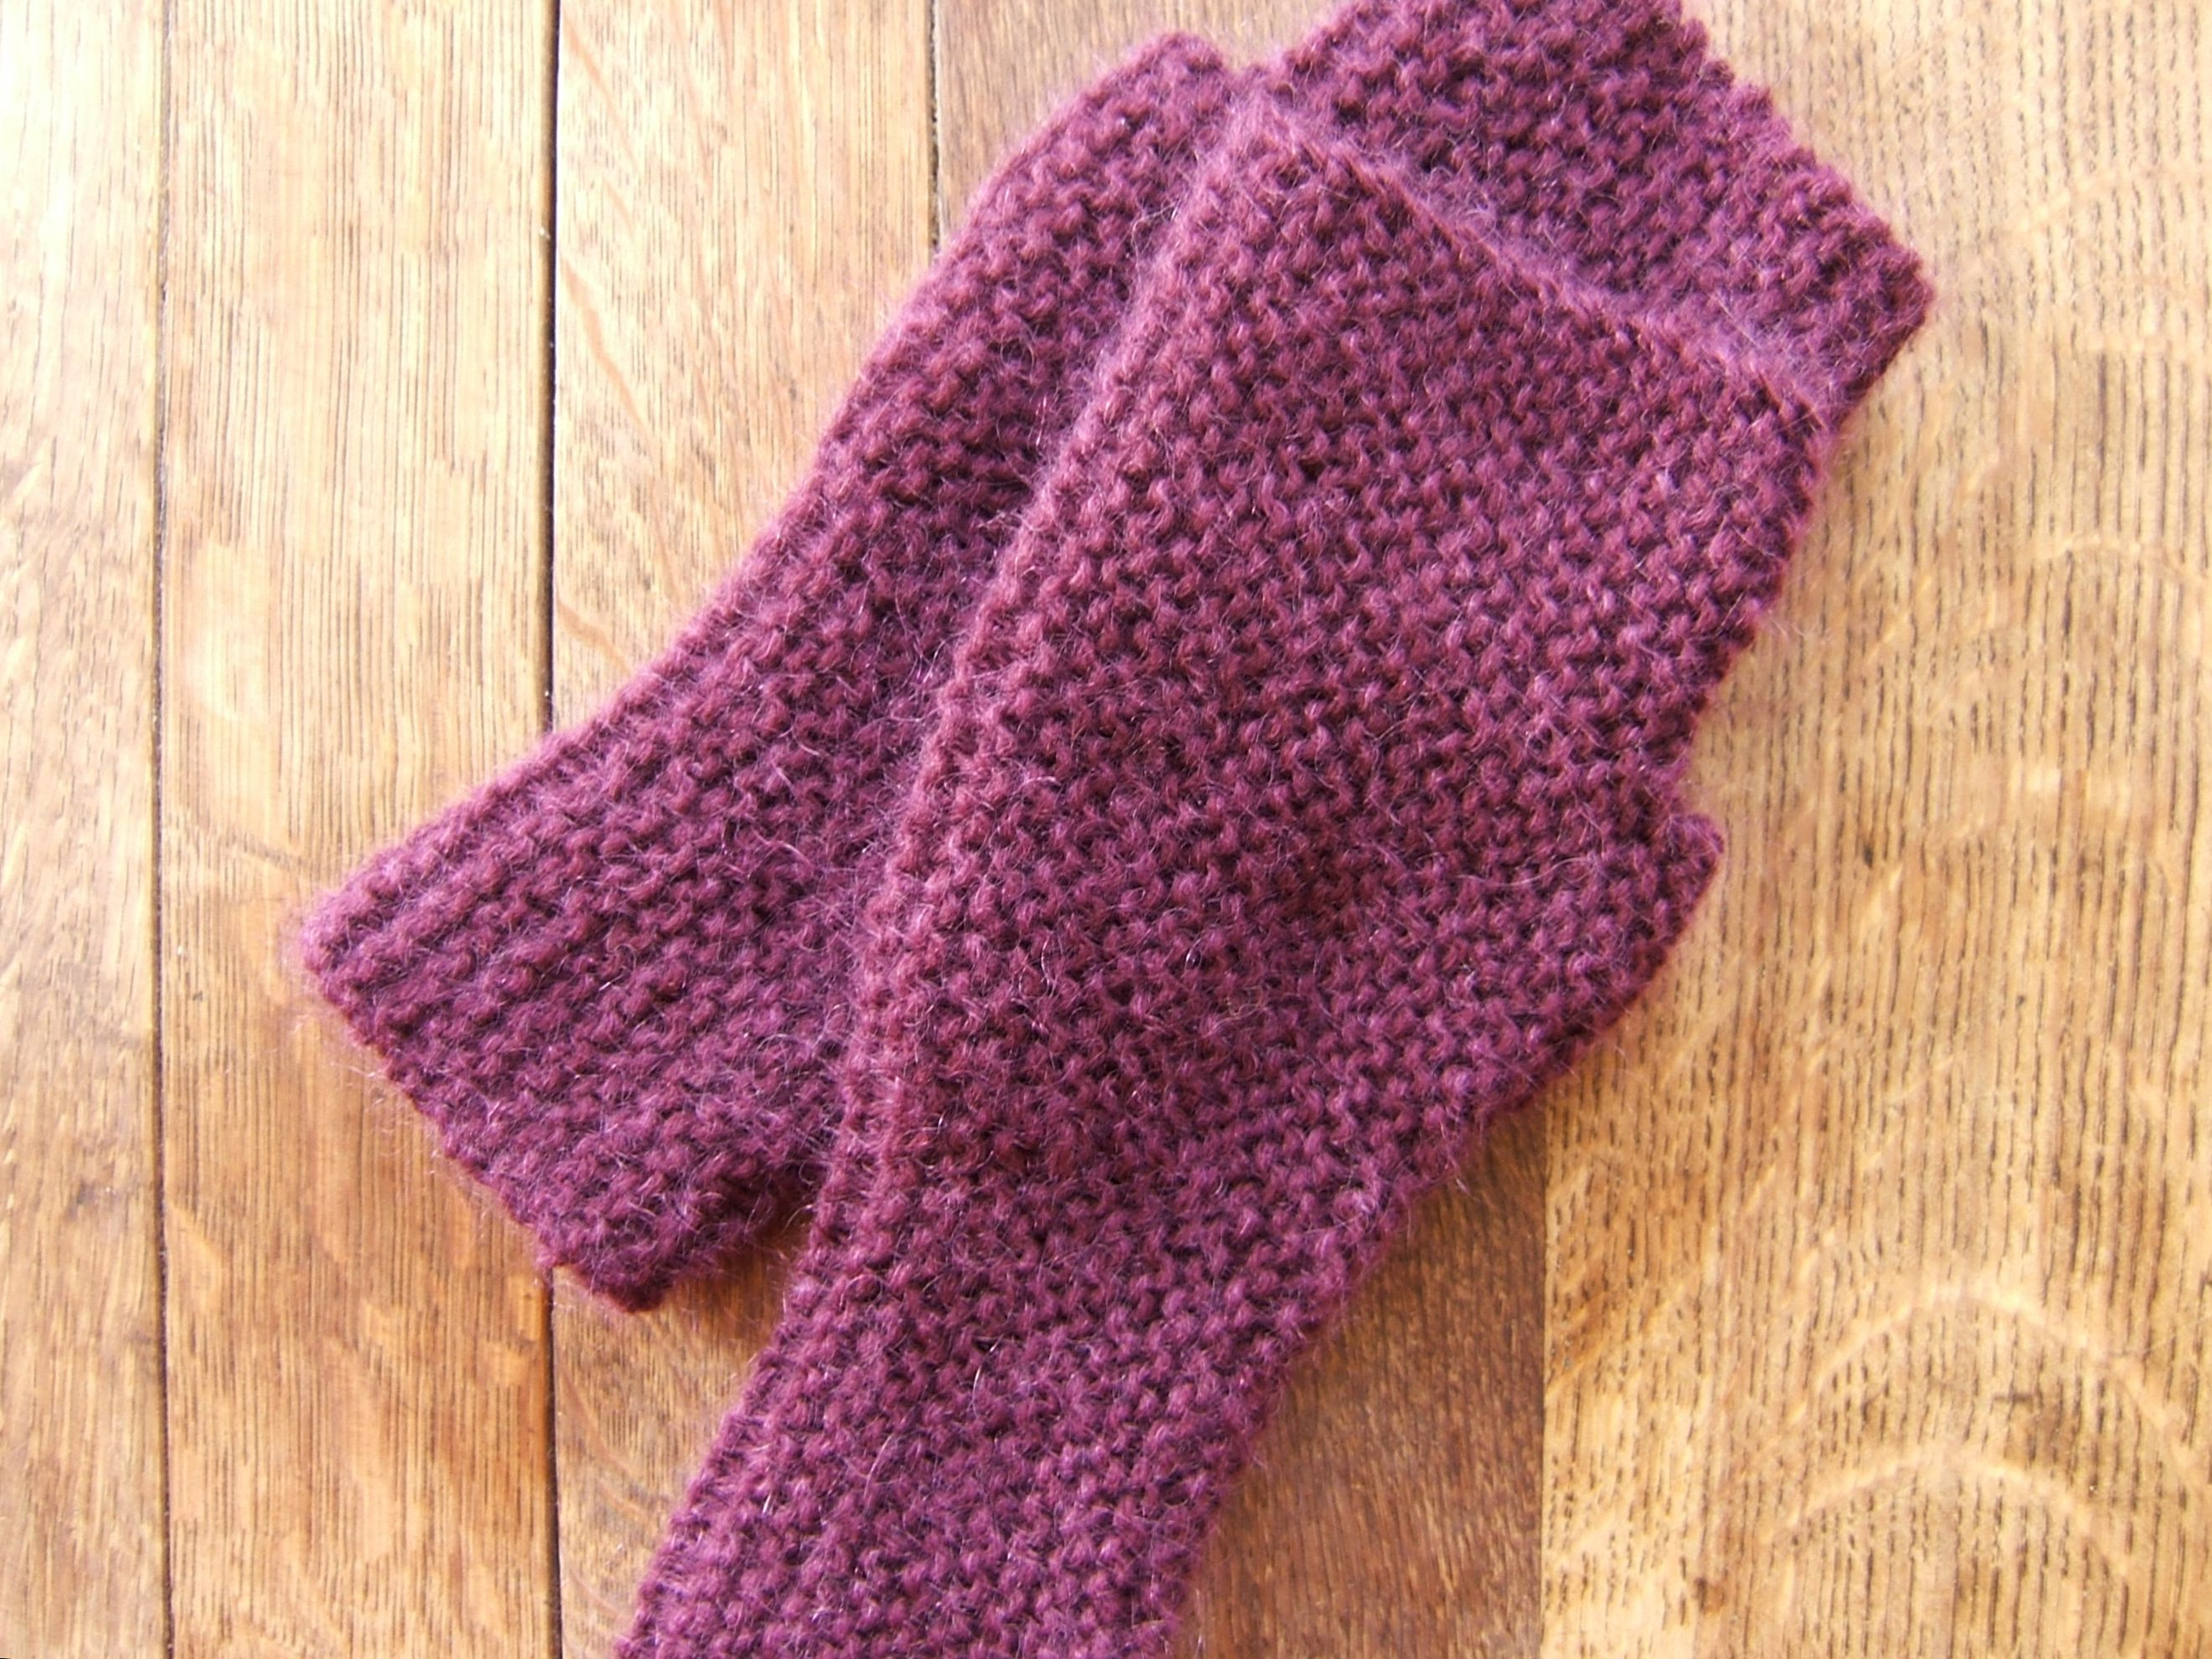 12 free knitting patterns for baby hat scarf and more try the garter stitch on patterns for baby bankloansurffo Images